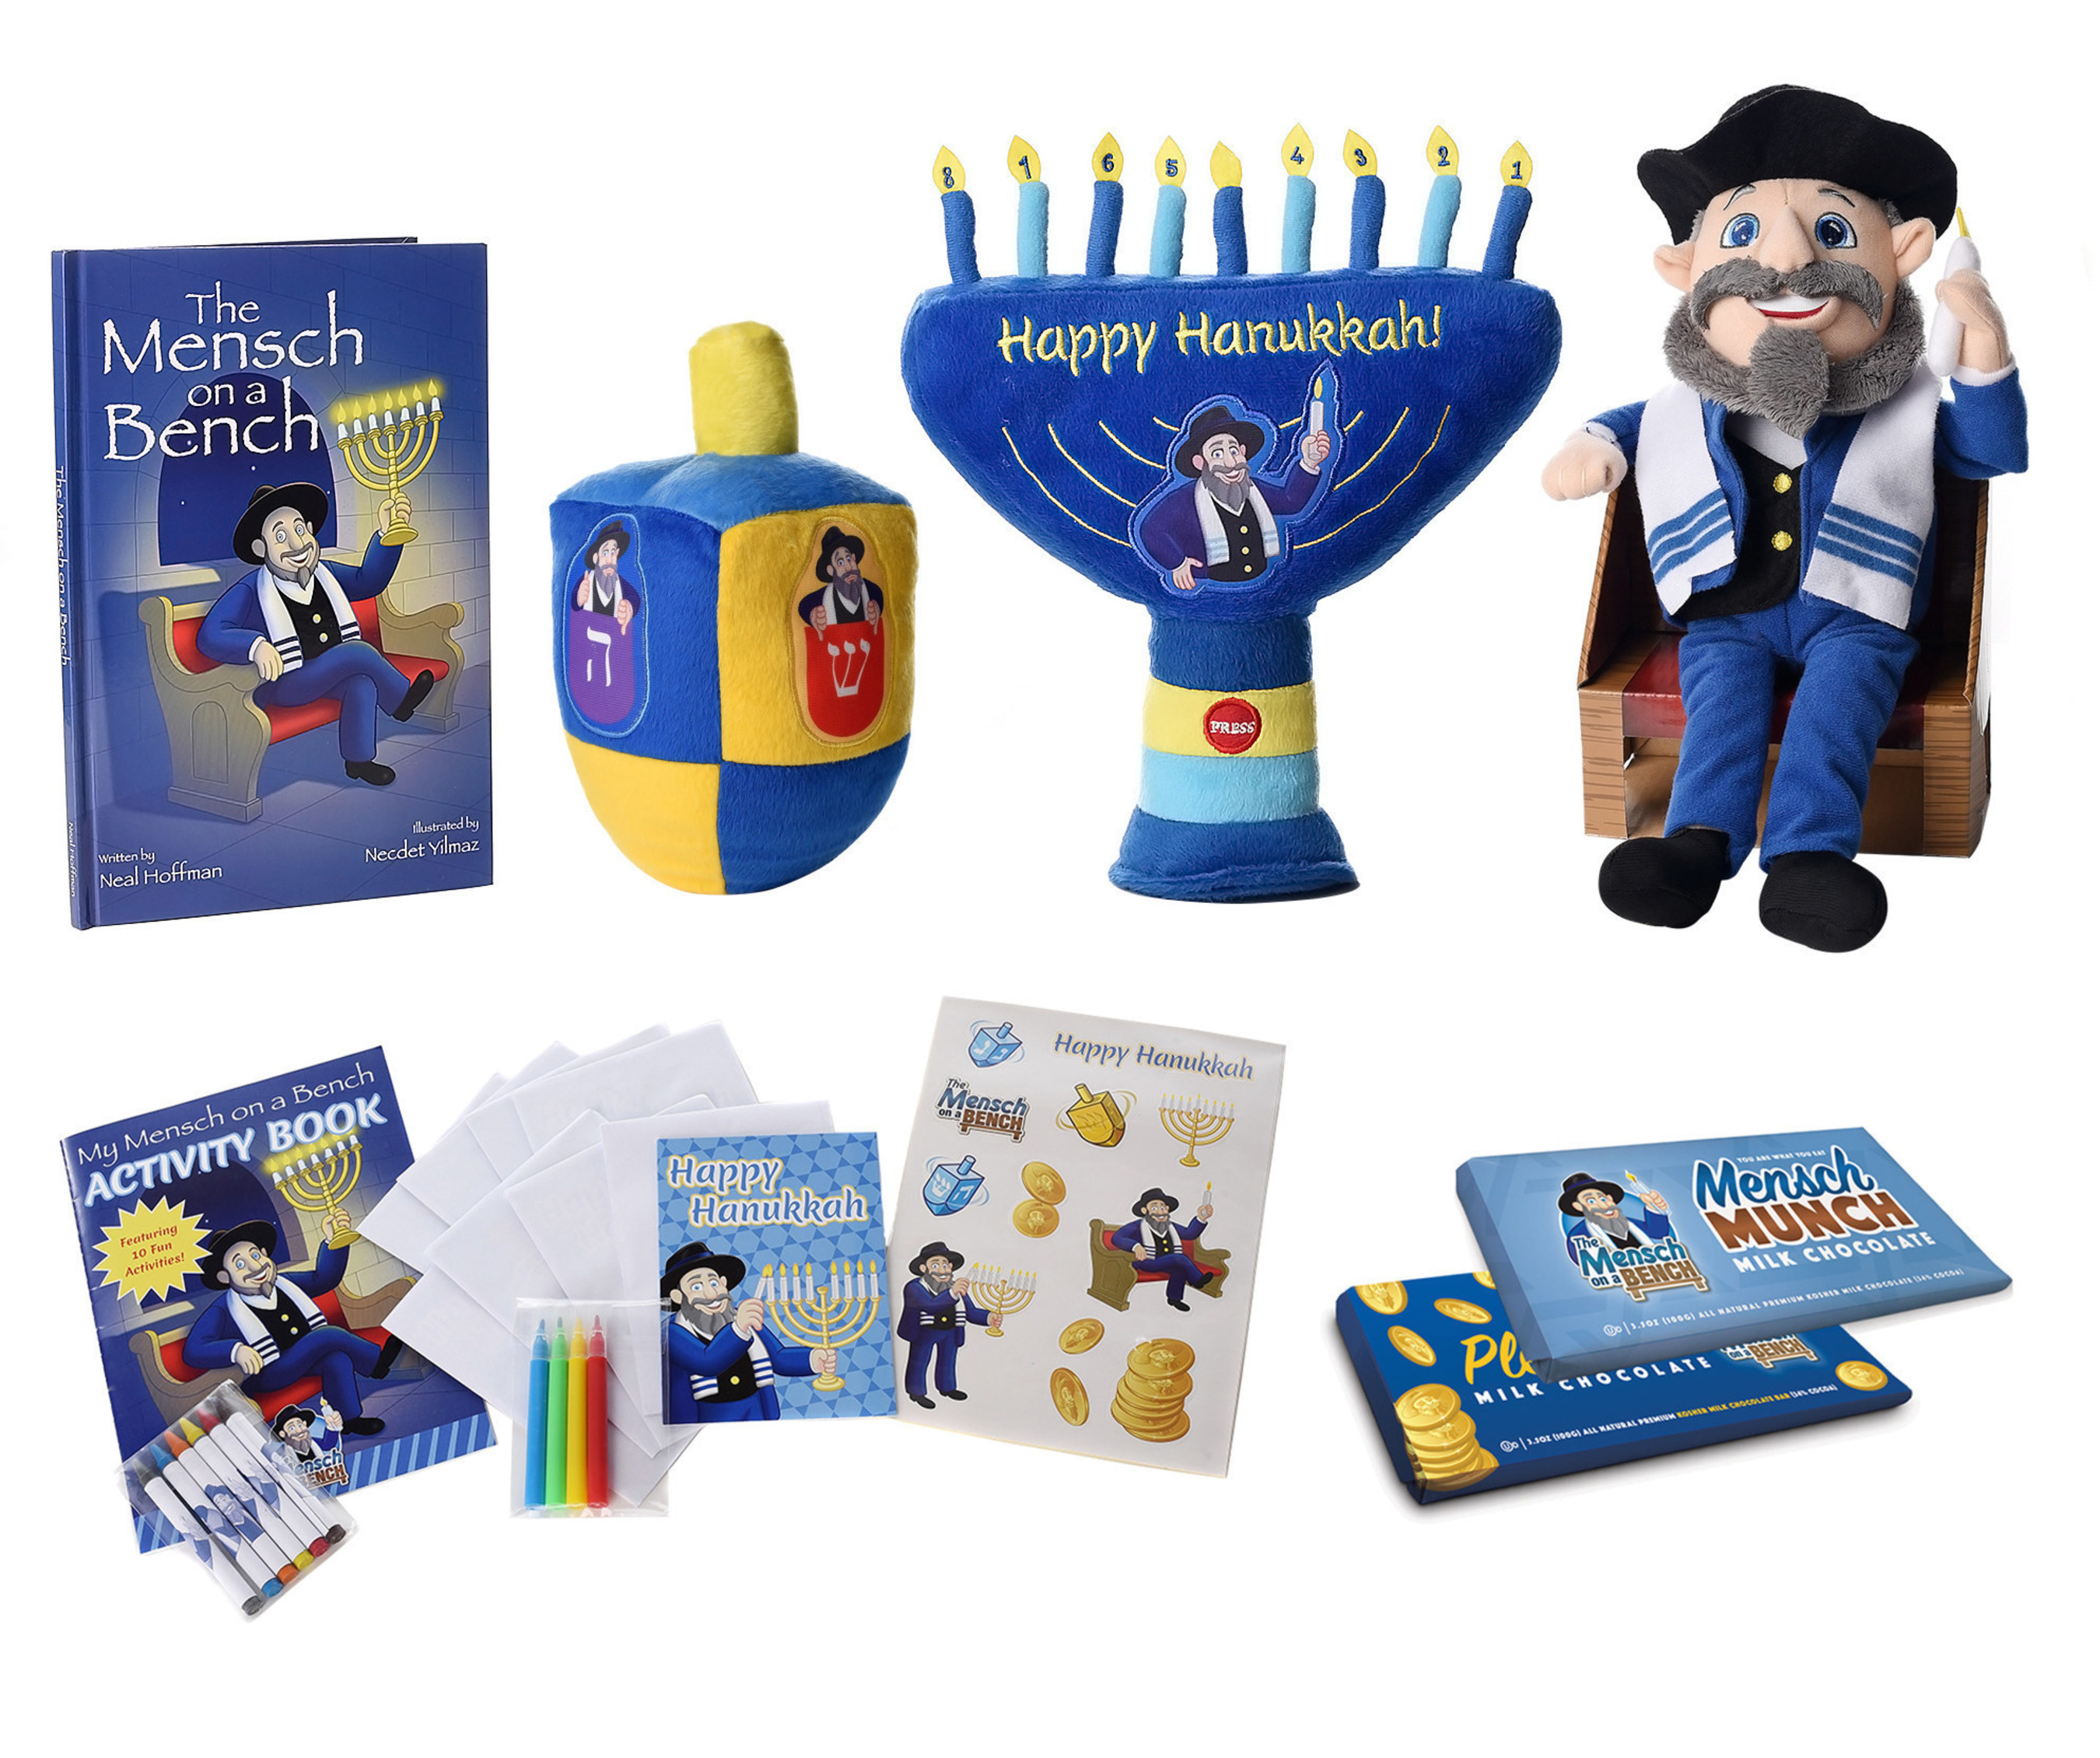 Hanukkah Phenomenom THE MENSCH ON A BENCH Puts More Fun-ukkah In Hanukkah With New Deals And Products